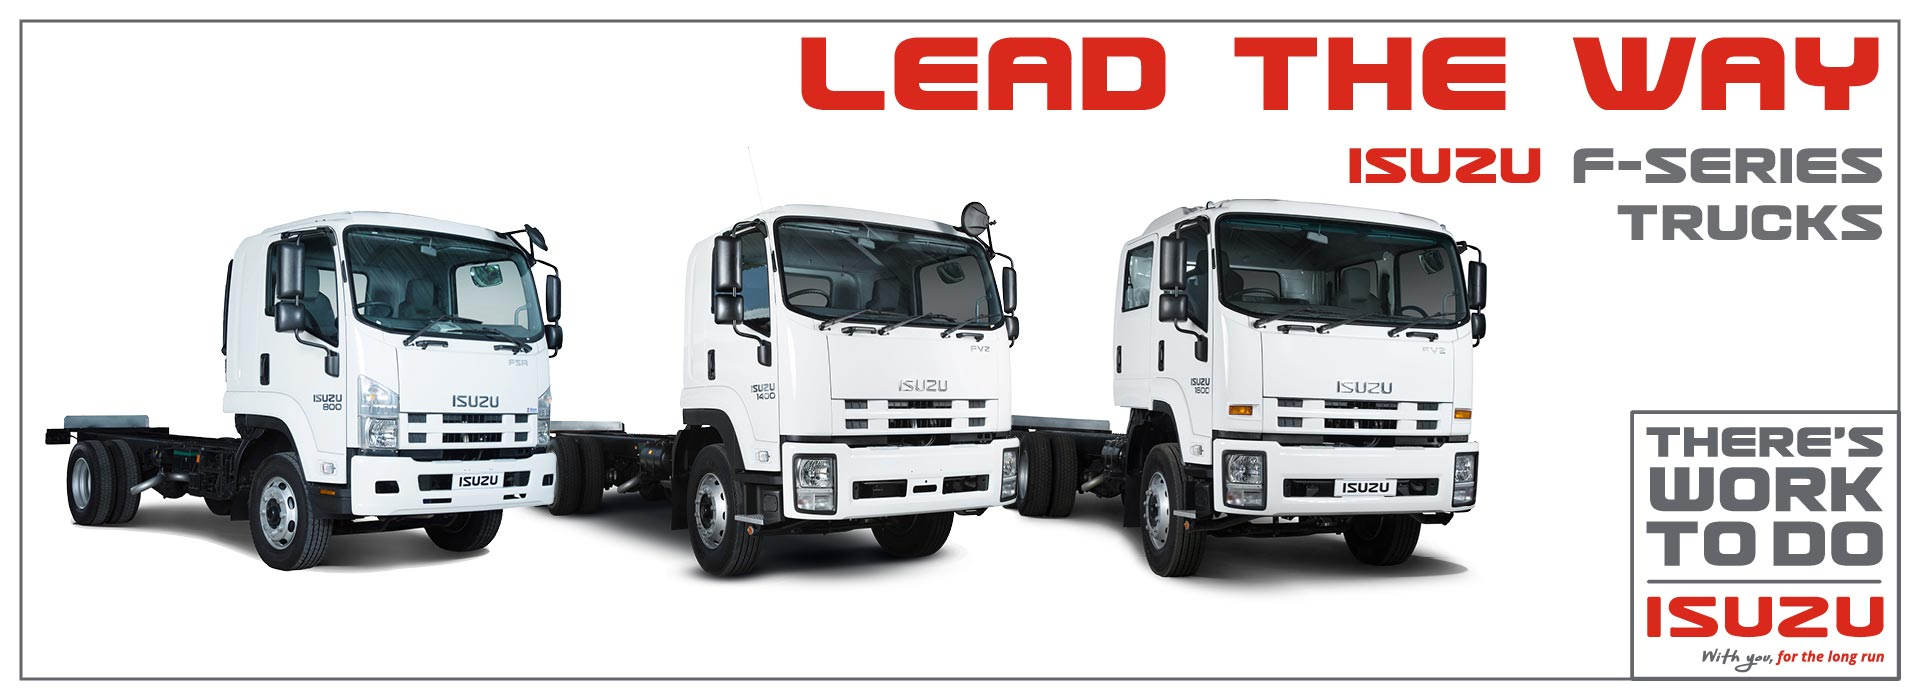 AUTO HOUSE VRYHEID - USED TRUCKS FOR SALE